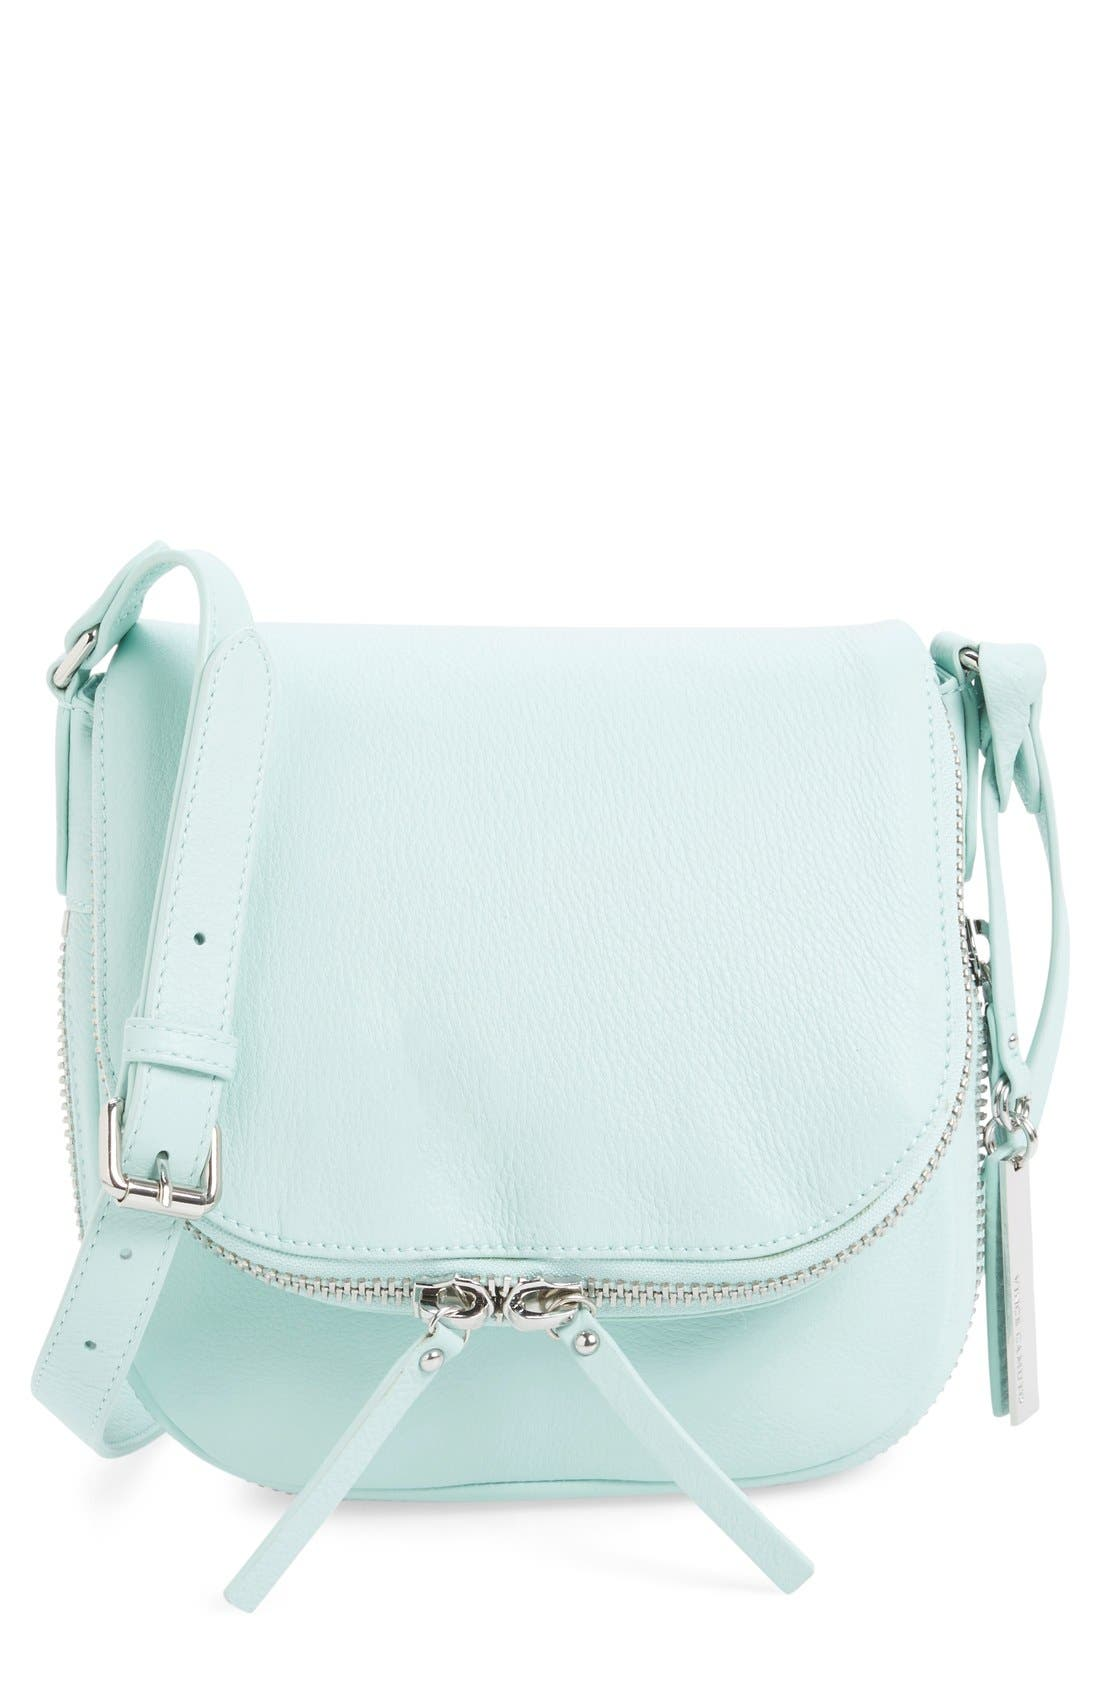 Alternate Image 1 Selected - Vince Camuto 'Baily' Leather Crossbody Bag